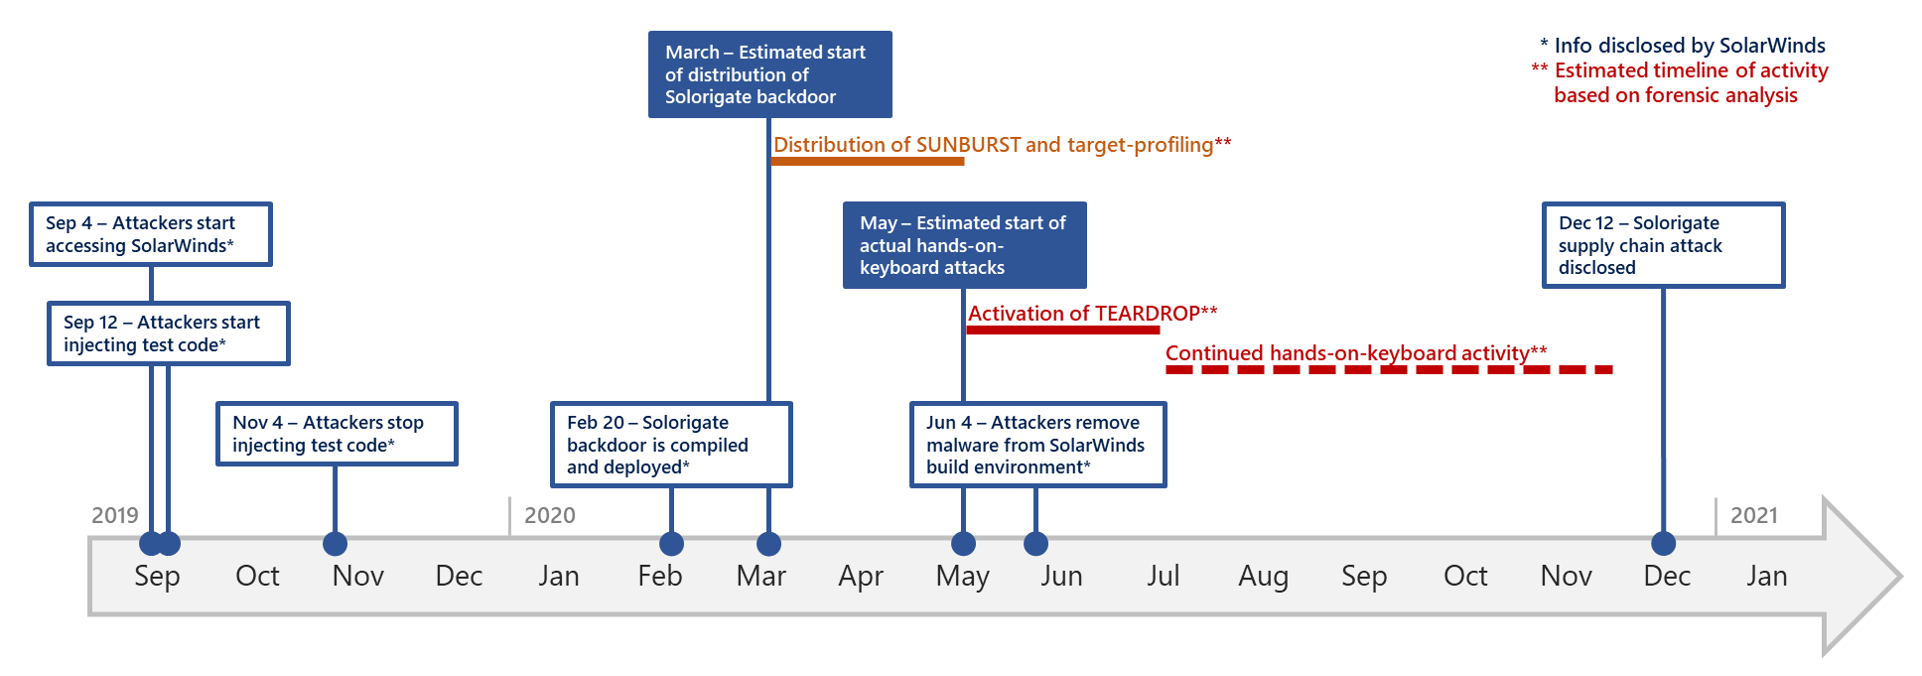 Timeline graph showing developments in the Solorigate attack